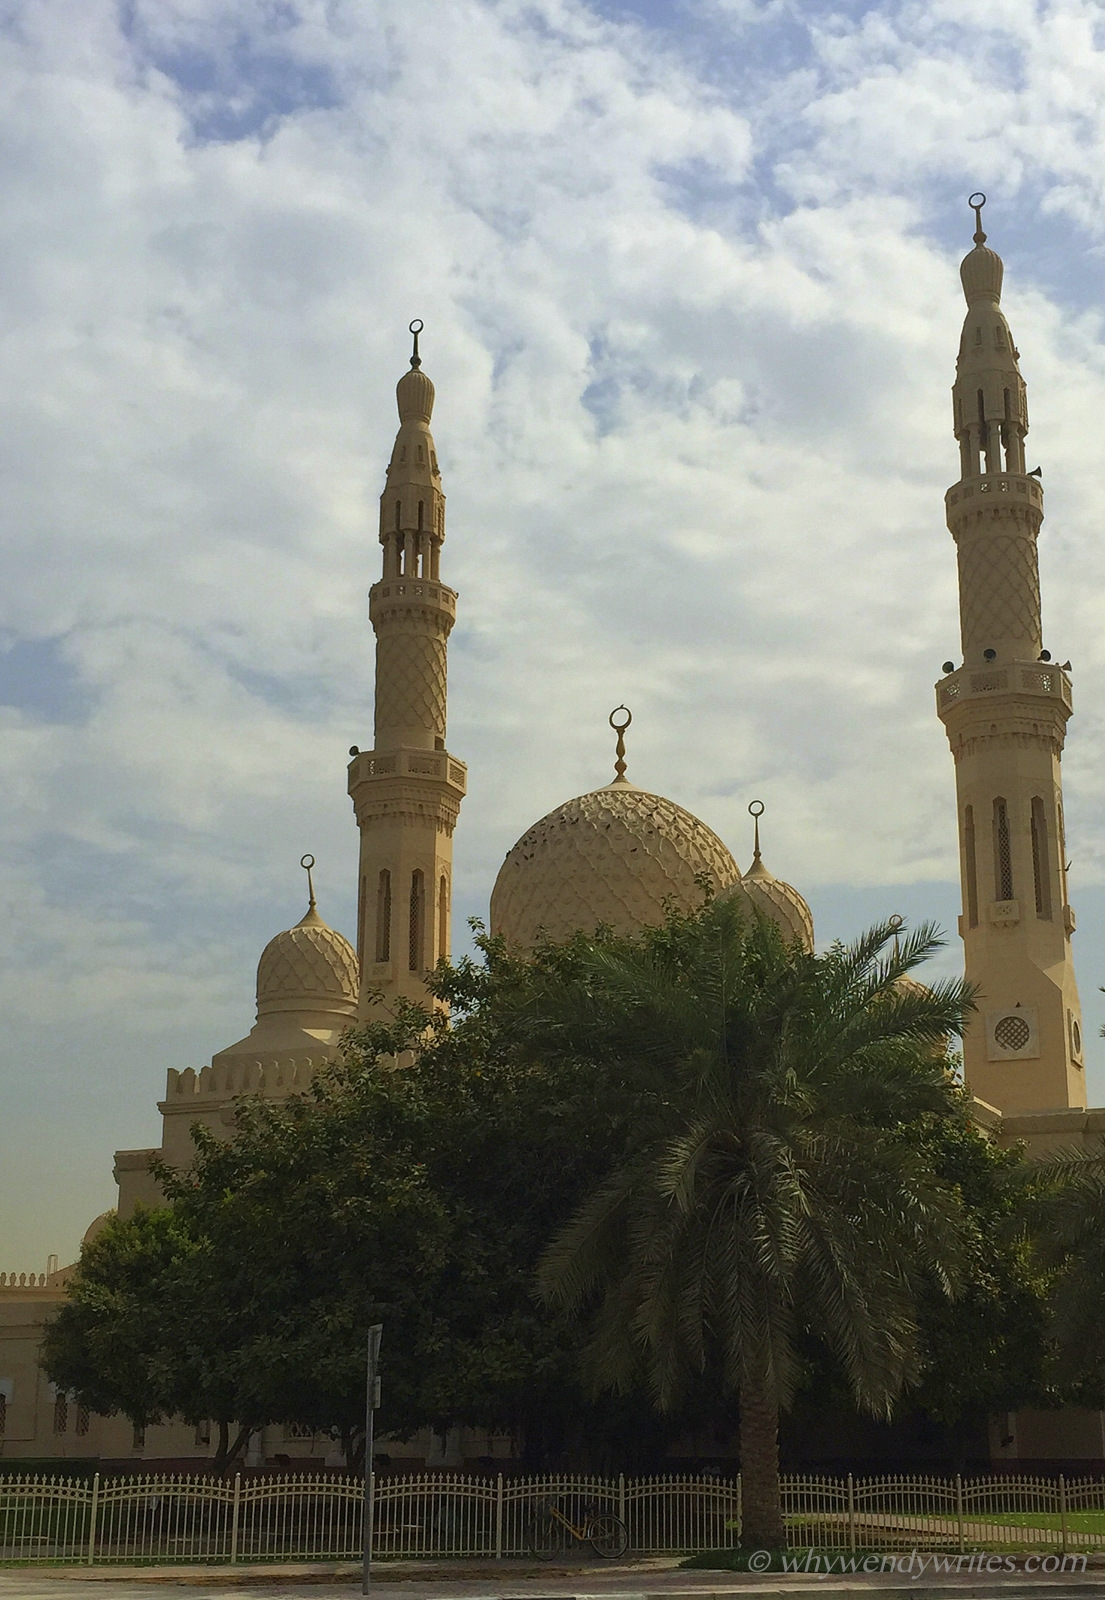 Postcard from Jumeriah Mosque -